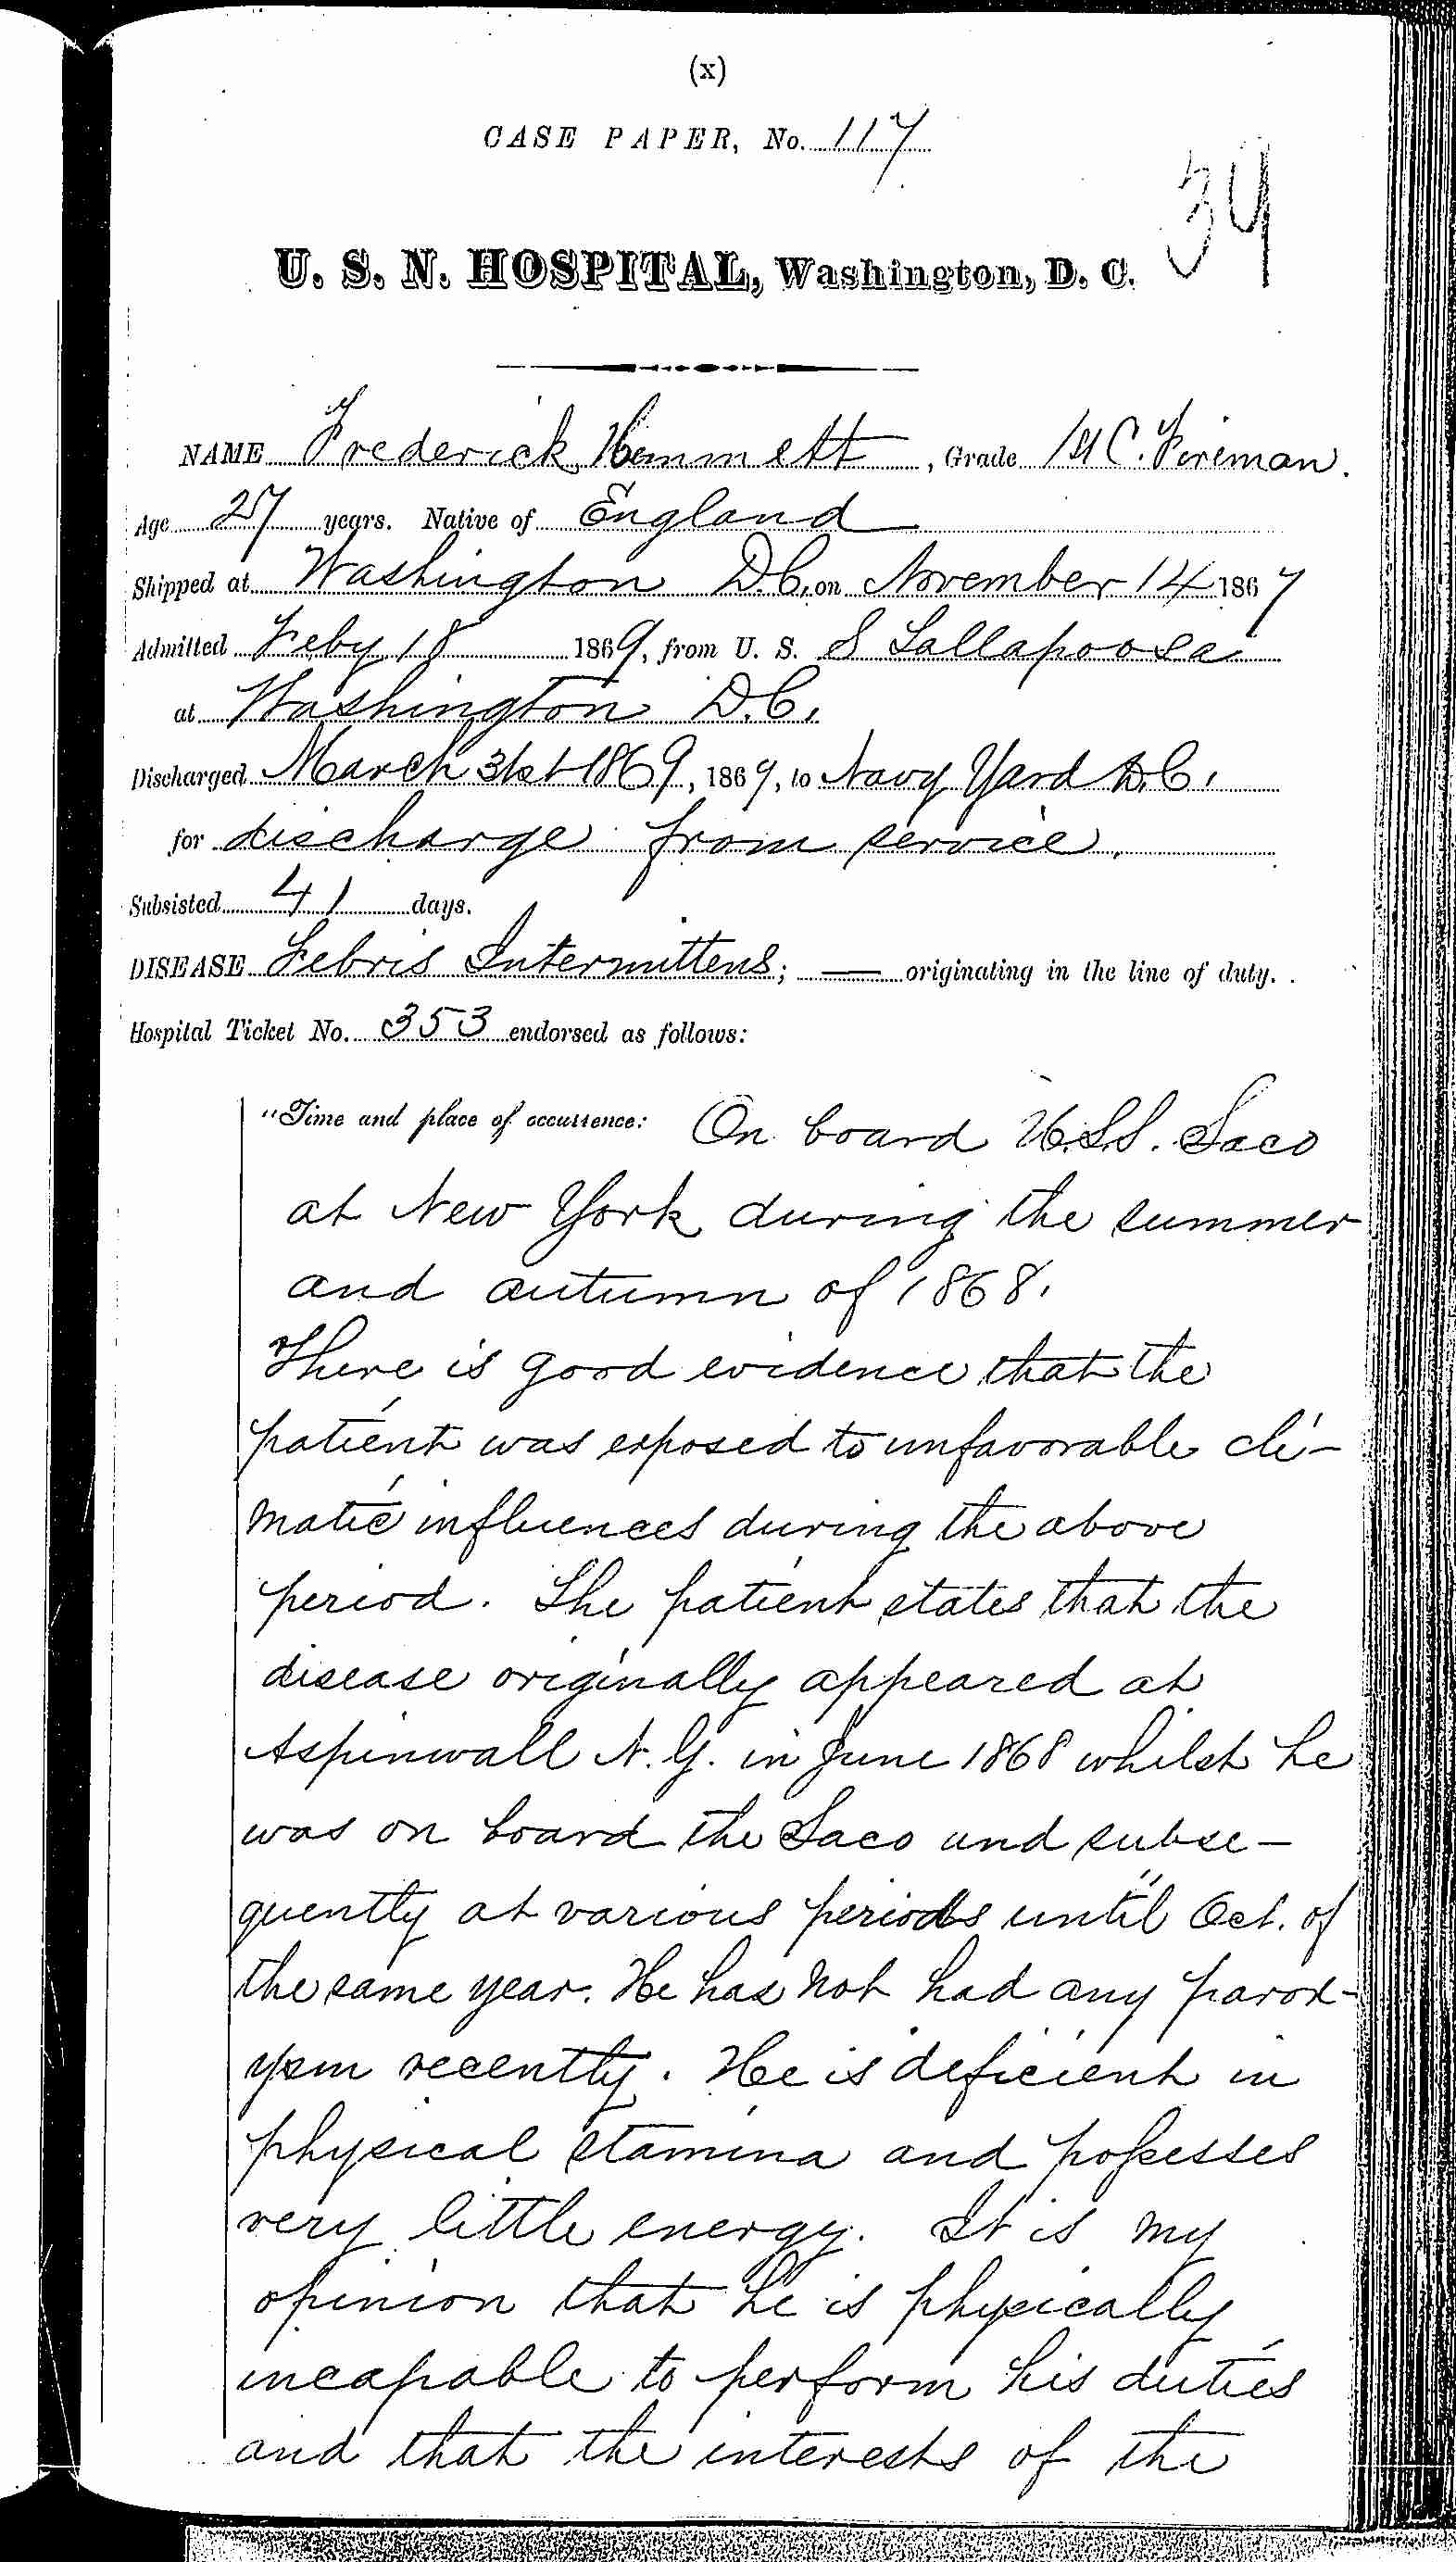 Entry for Frederick Hammett (page 1 of 5) in the log Hospital Tickets and Case Papers - Naval Hospital - Washington, D.C. - 1868-69